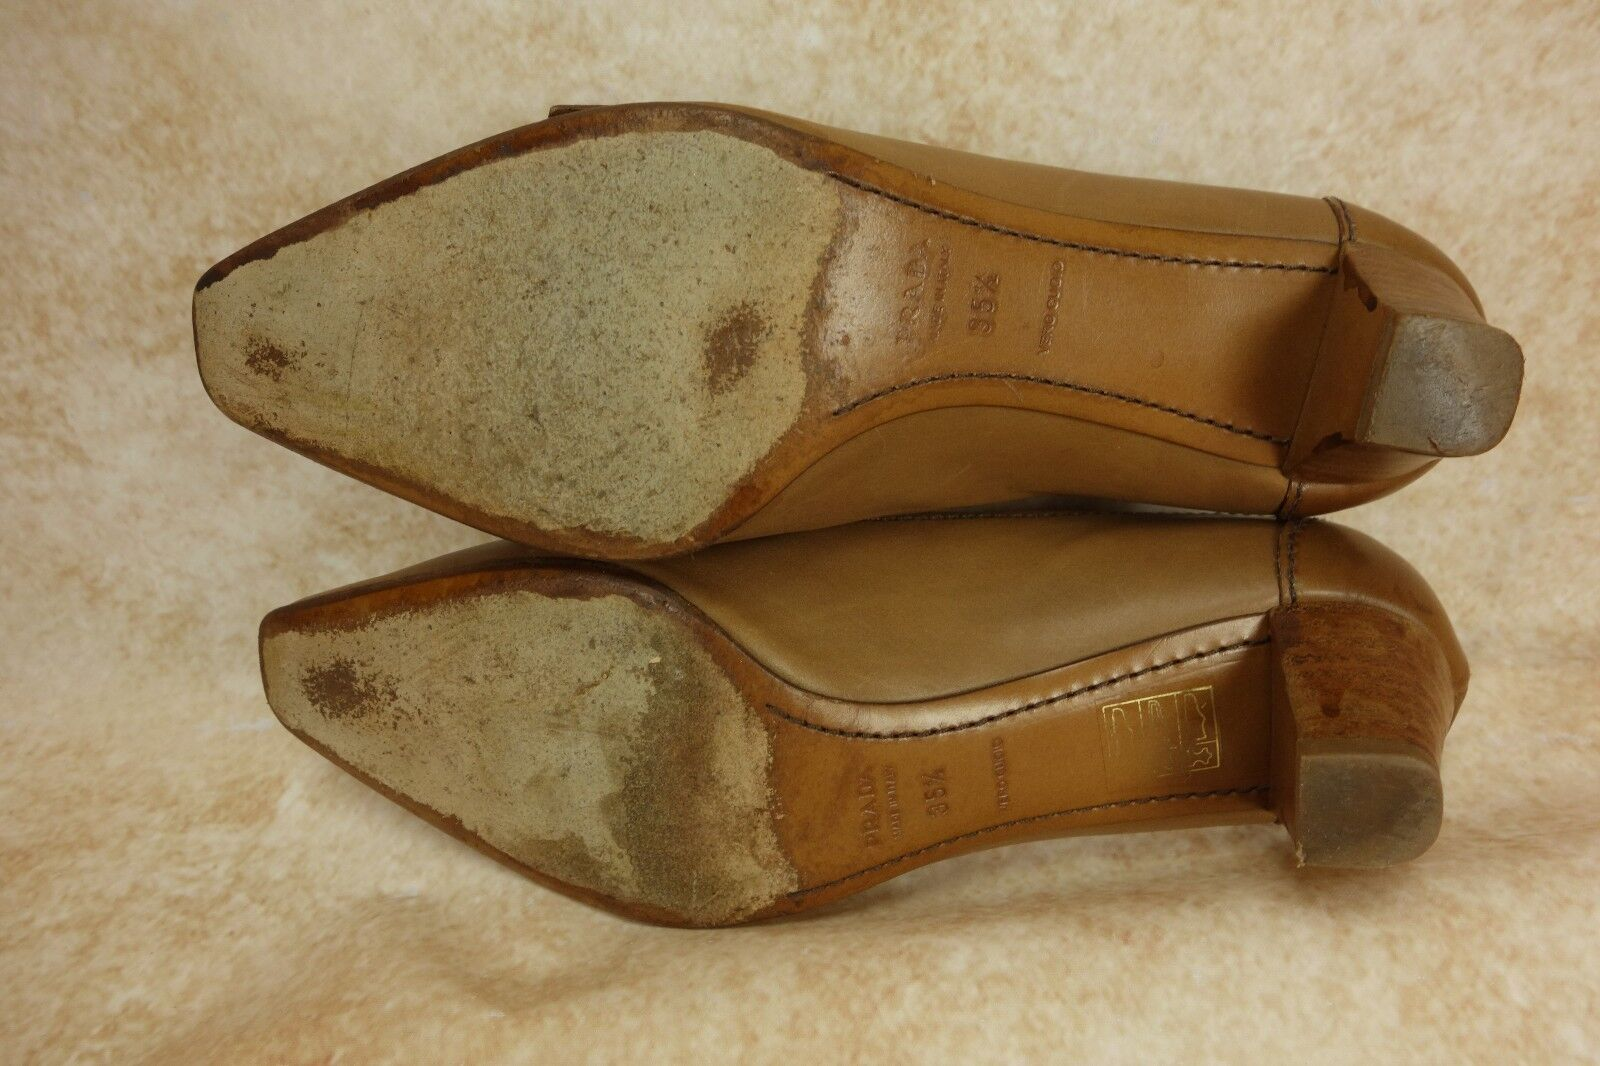 PRADA marron Leather Buckle Strap Strap Strap Block Heel Designer Pumps Heels femmes Sze 35.5 e6ccd7